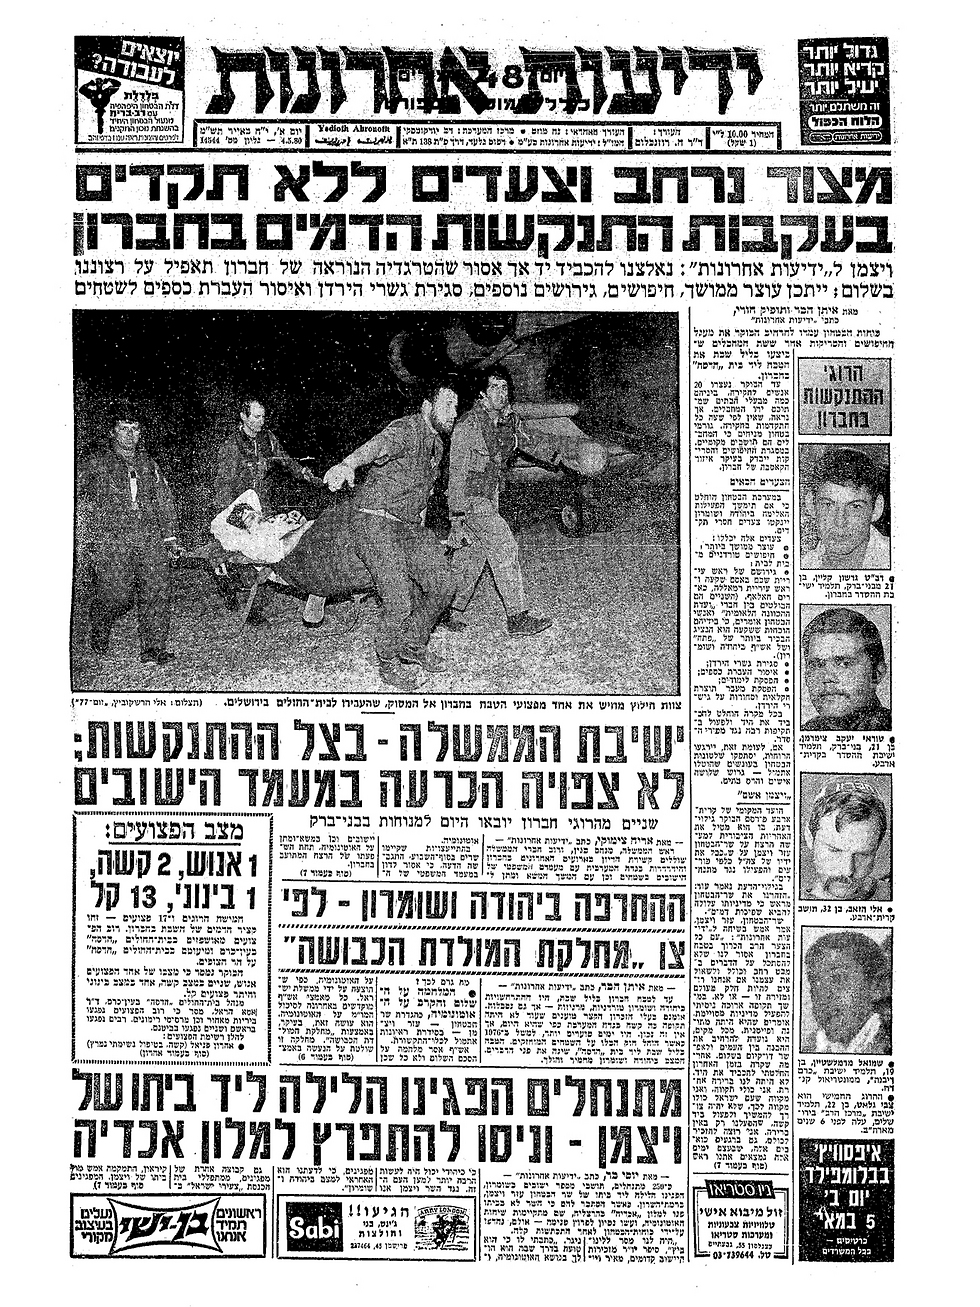 May 1980 report of the terror attack Abu Sneineh took part in, leading to the murder of six Israelis